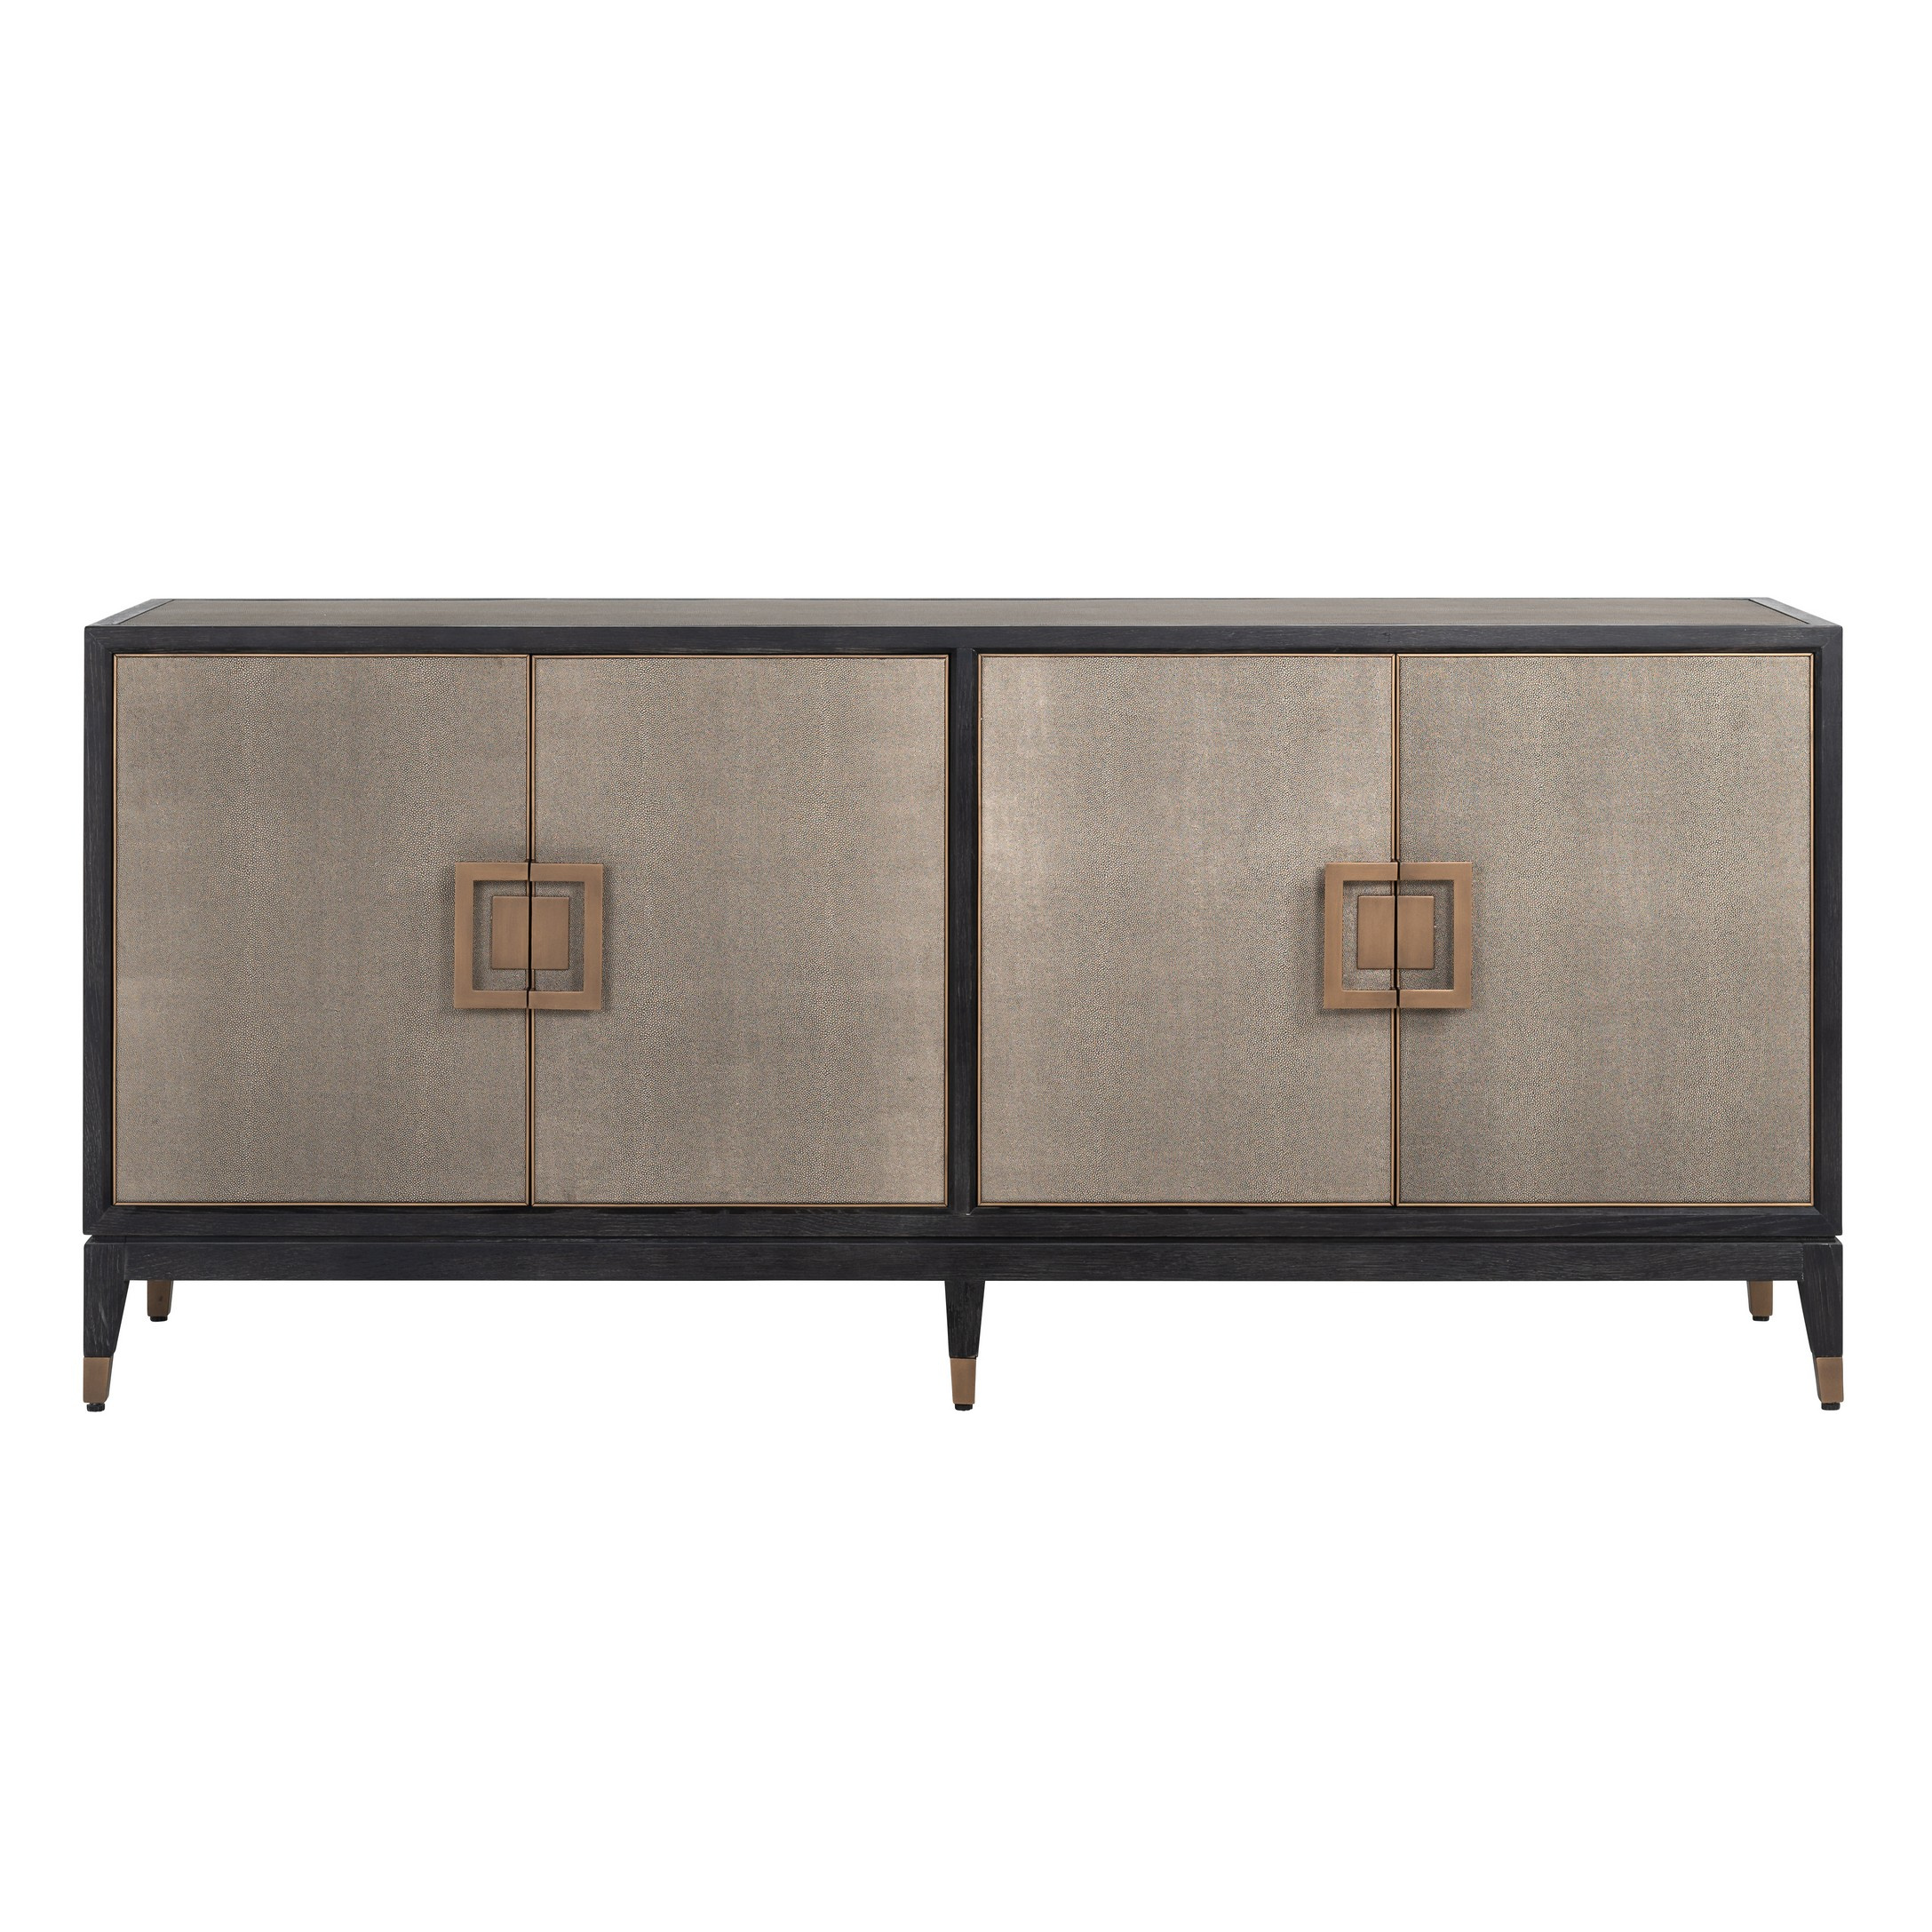 Strada 4 Door Sideboard